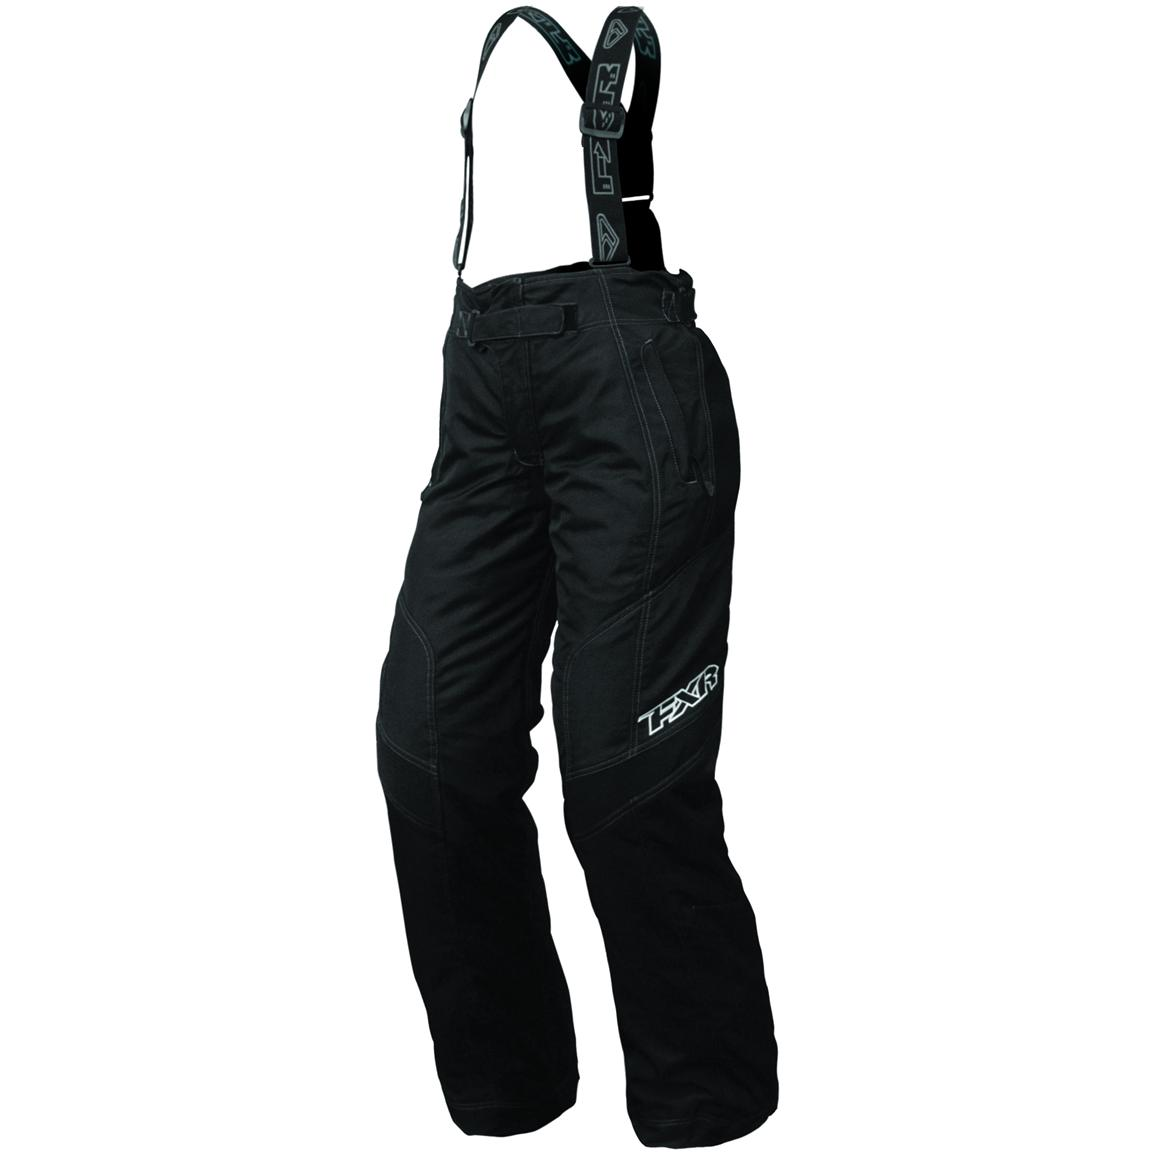 Women's FXR® Blizzard Pants, Black